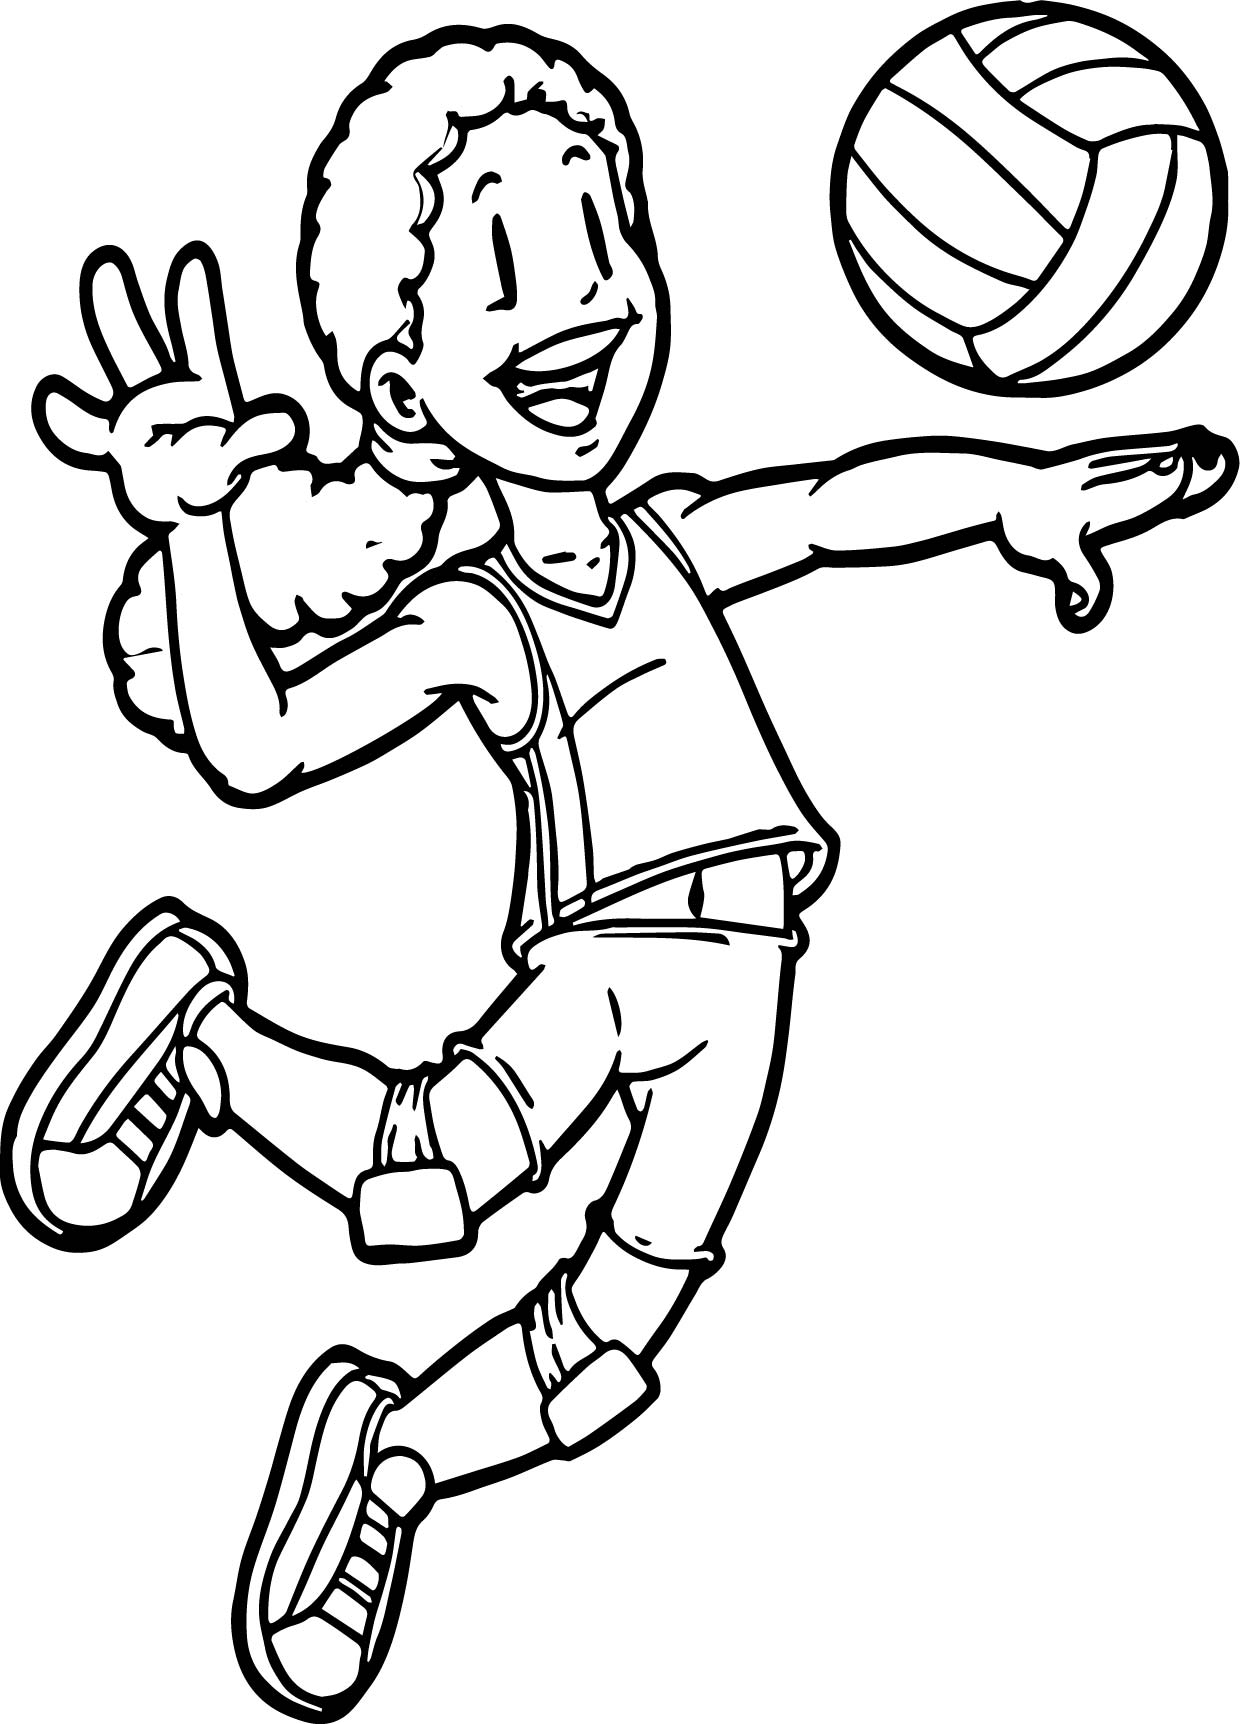 coloring pages sports - kids playing sports volleyball coloring page